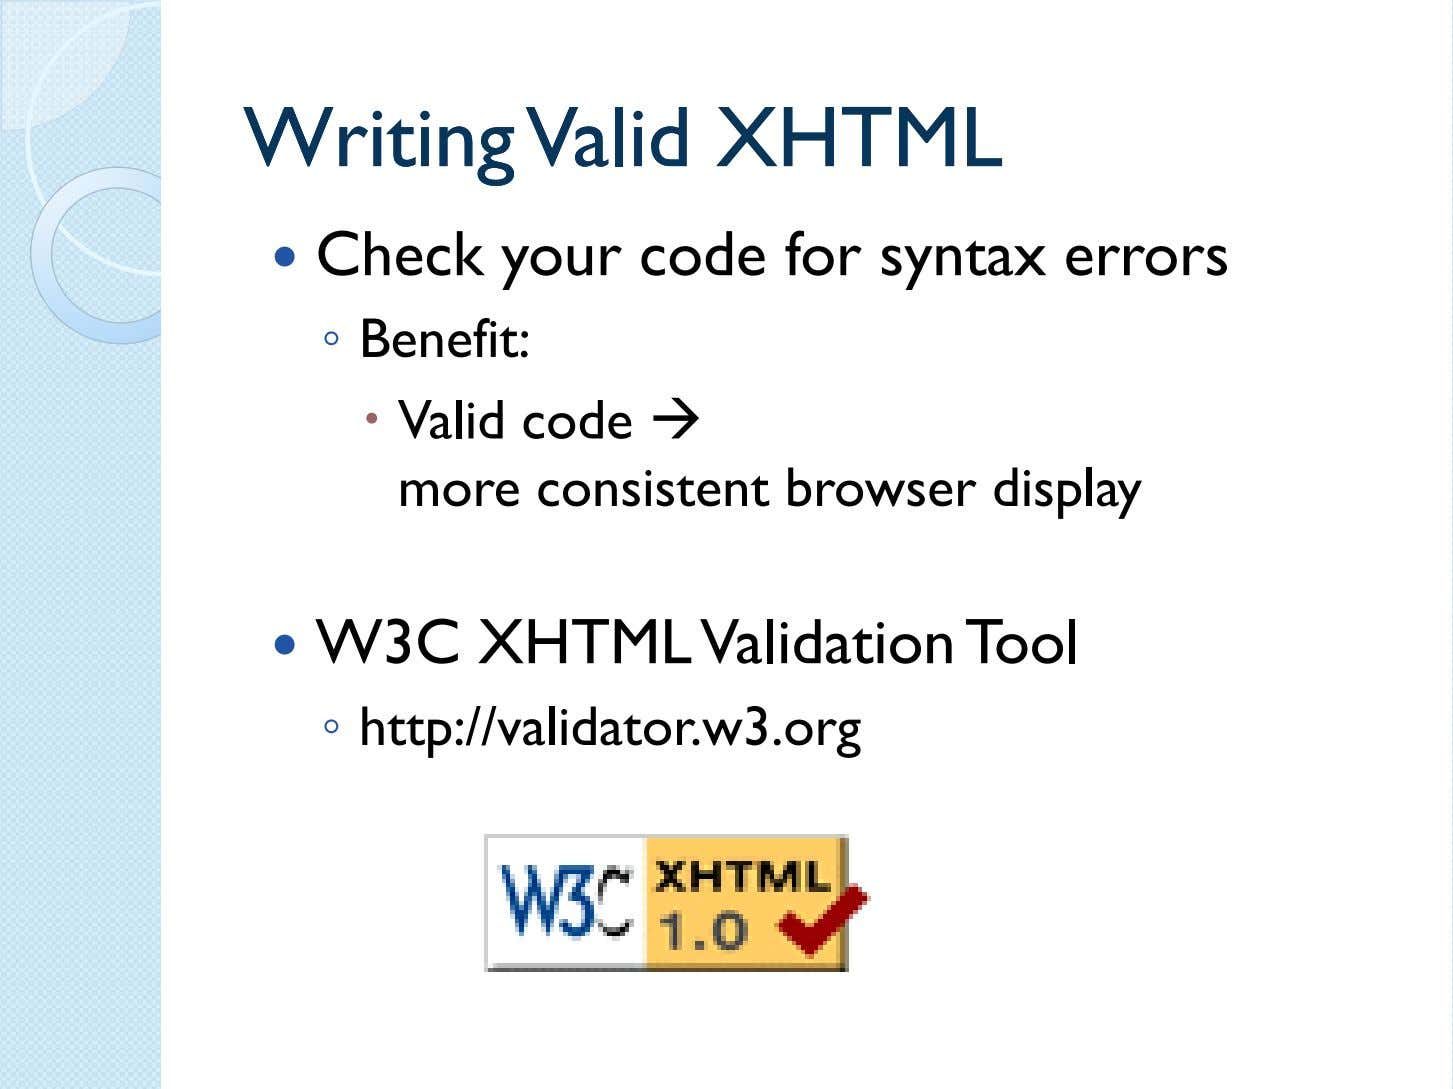 WritingWriting ValidValid XHTMLXHTML Check your code for syntax errors ◦ Benefit: Valid code more consistent